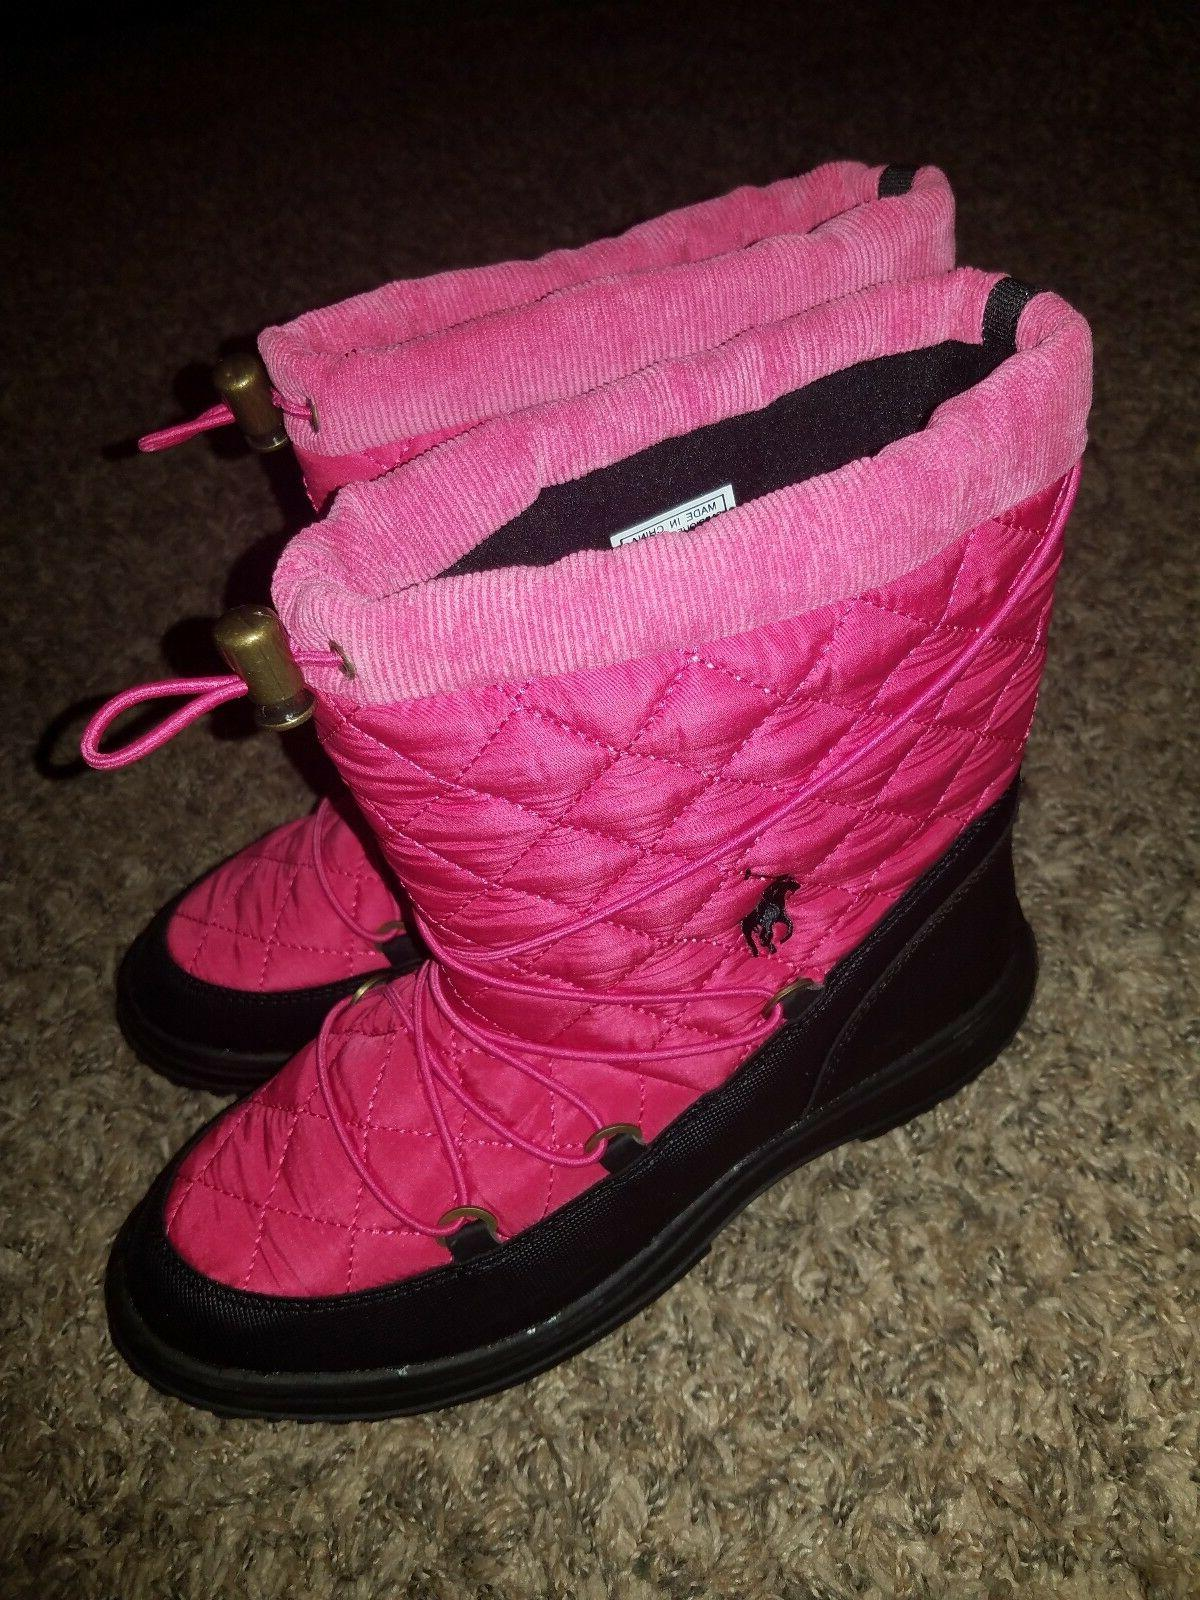 juniors pink boots size 6